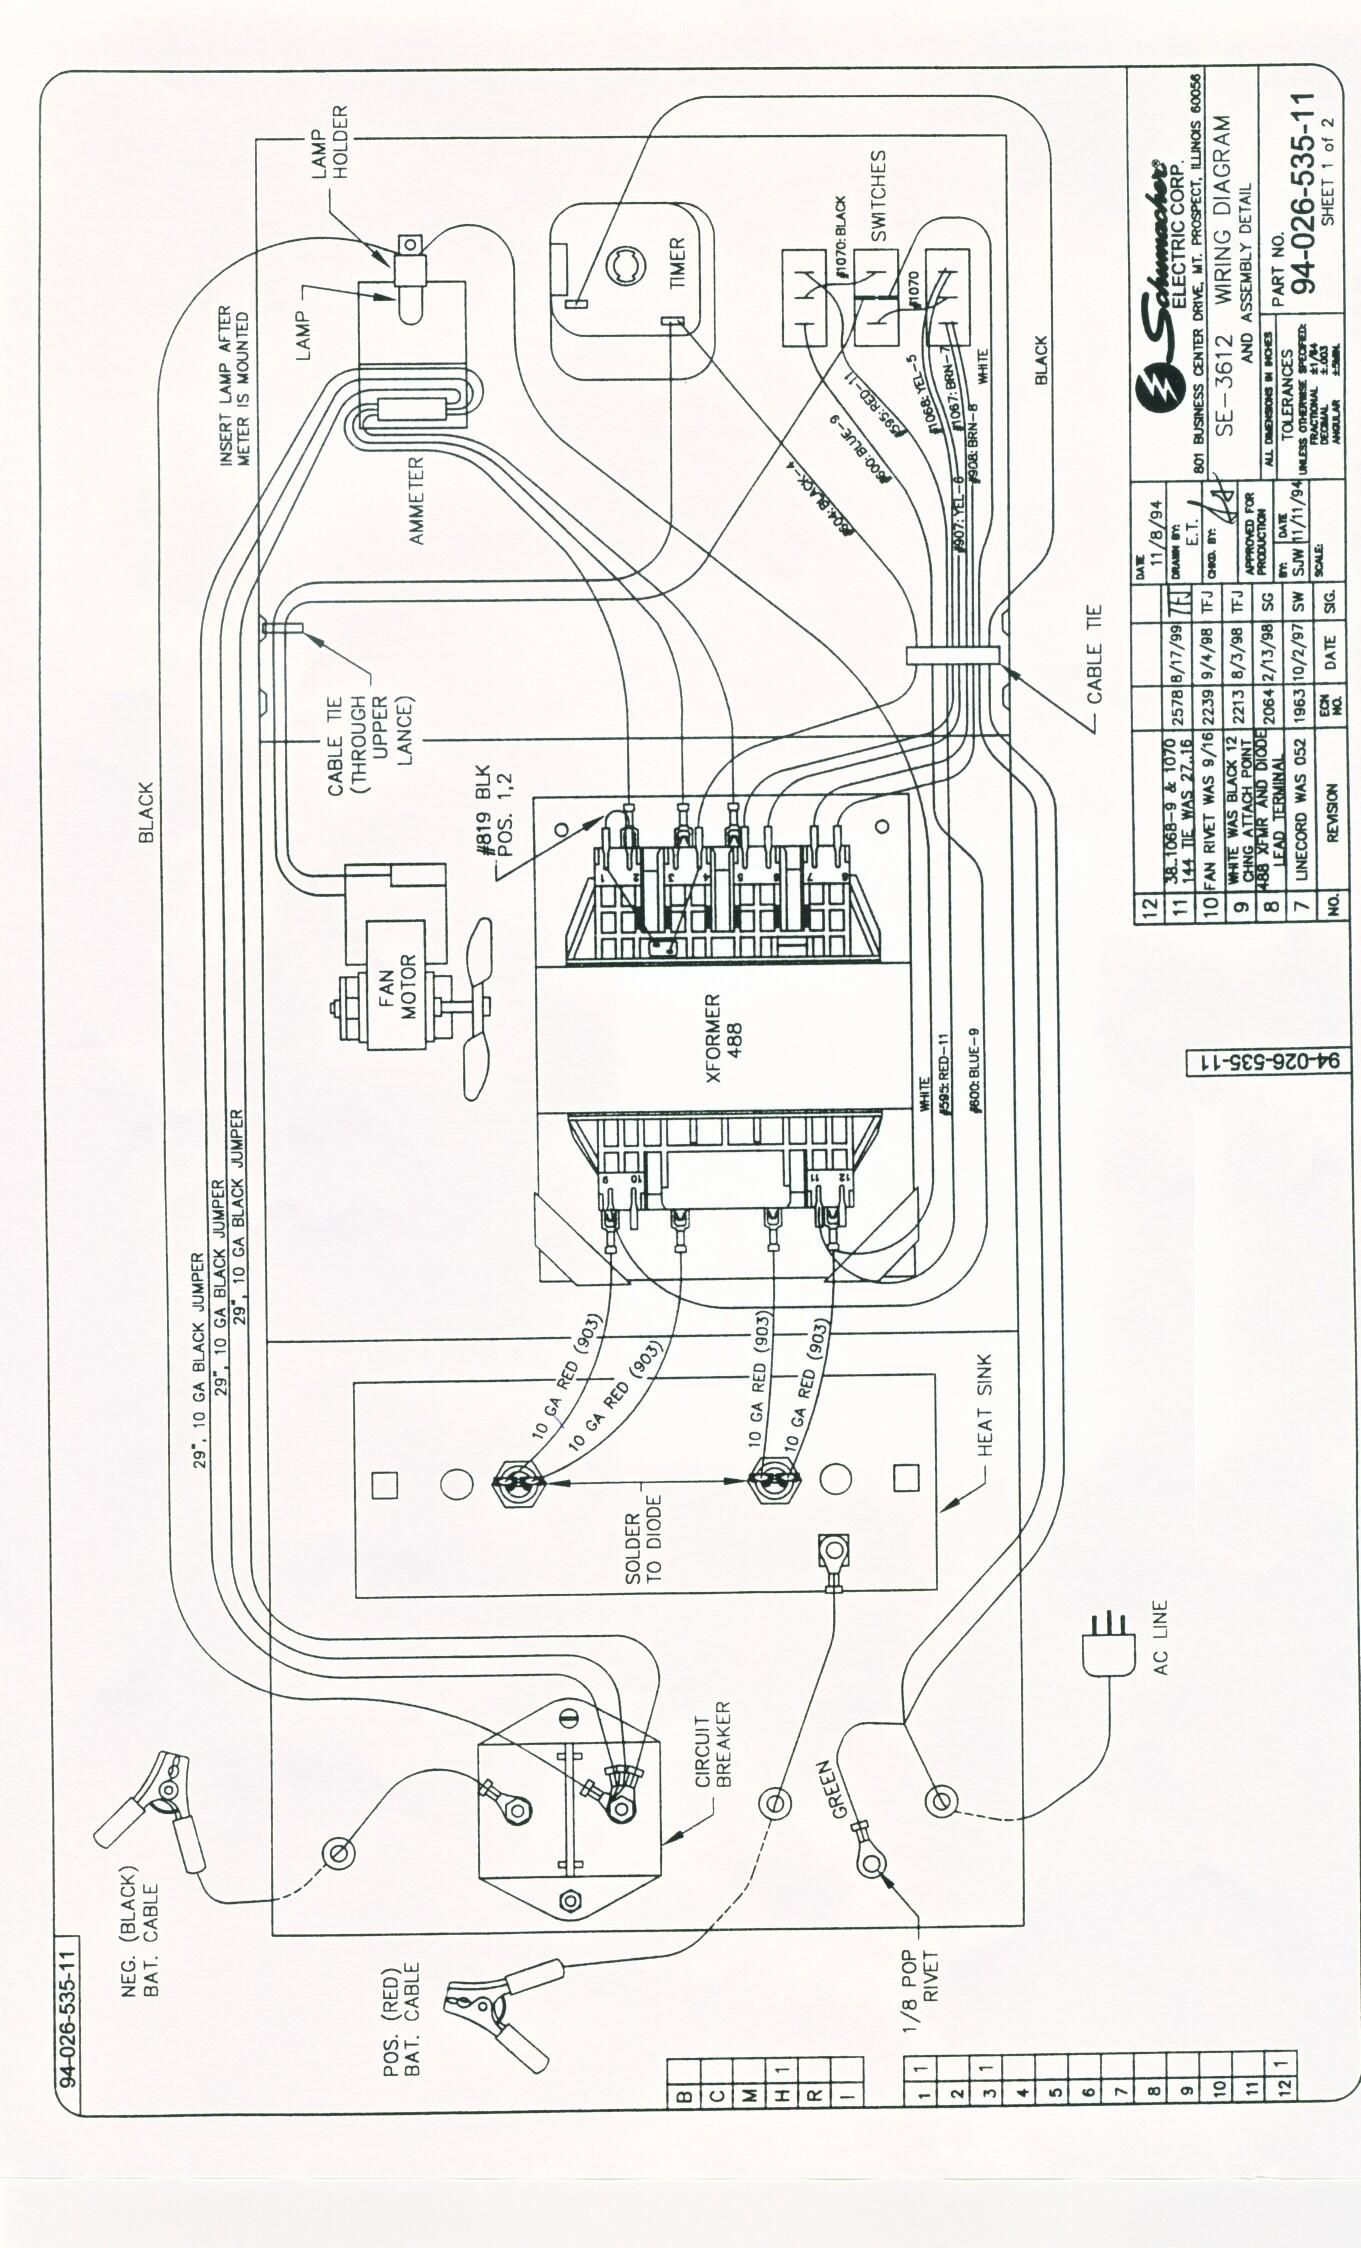 wiring diagram for 1979 charger wiring diagram for 1979 chevrolet truck schumacher battery charger wiring diagram | charger ...